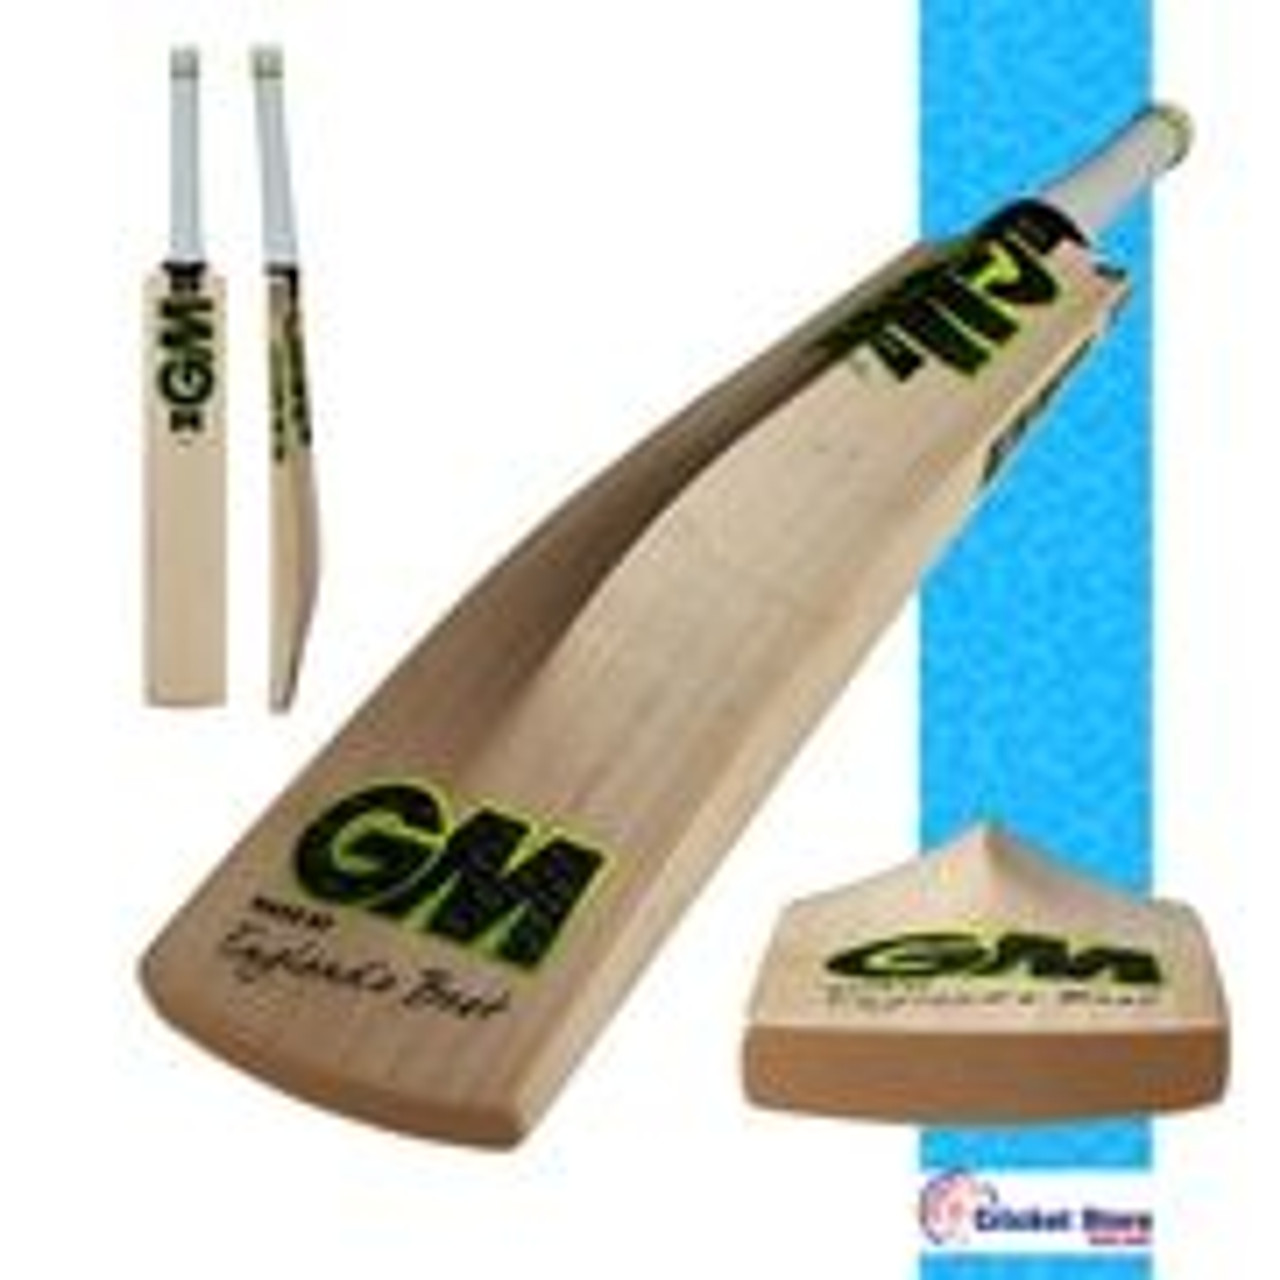 GM Zelos Cricket Bats 2019